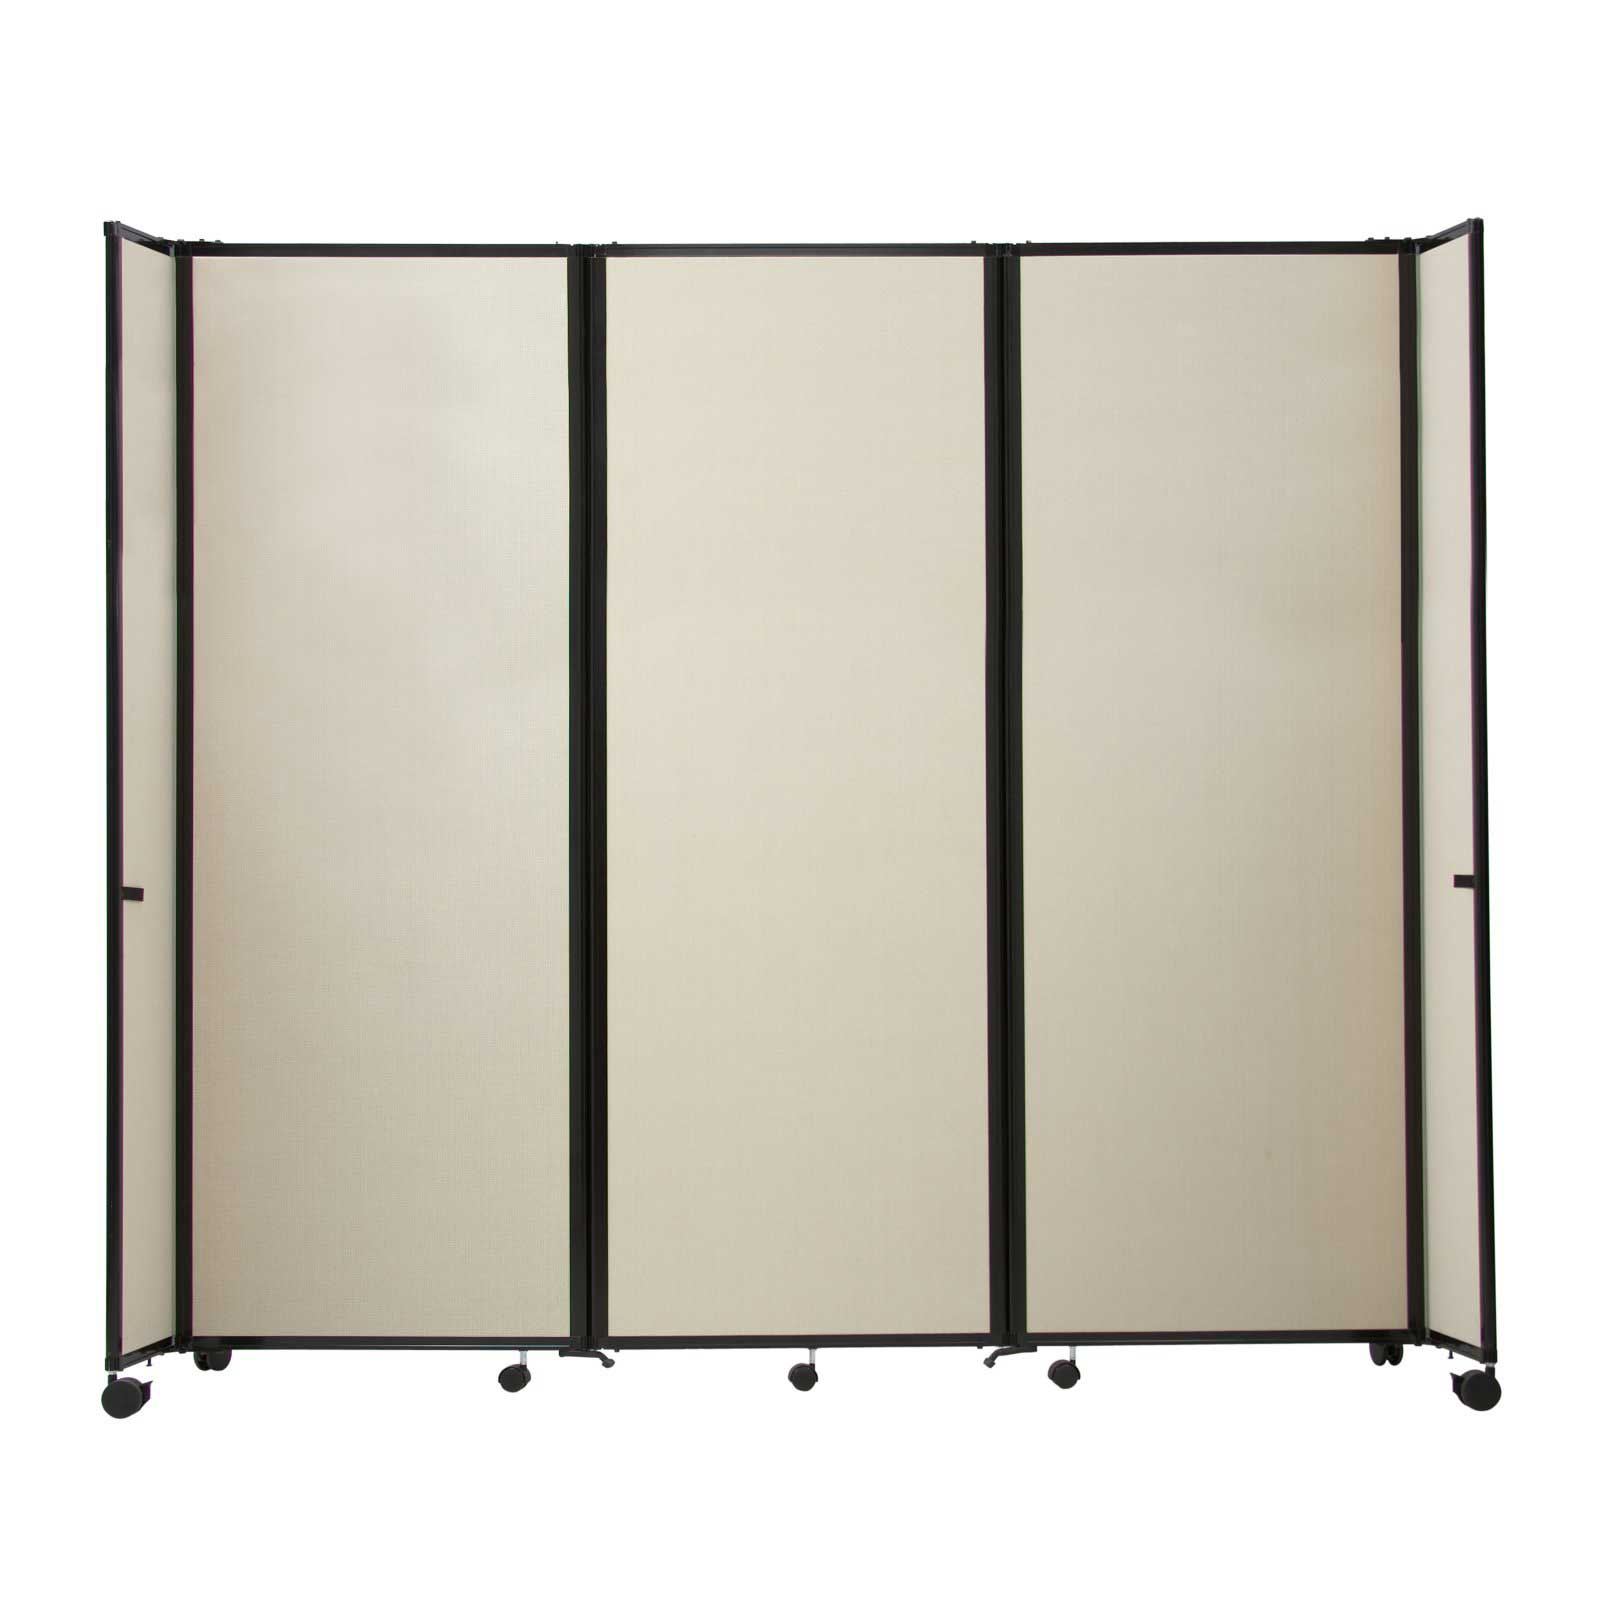 divider walls on wheels portable wall divider